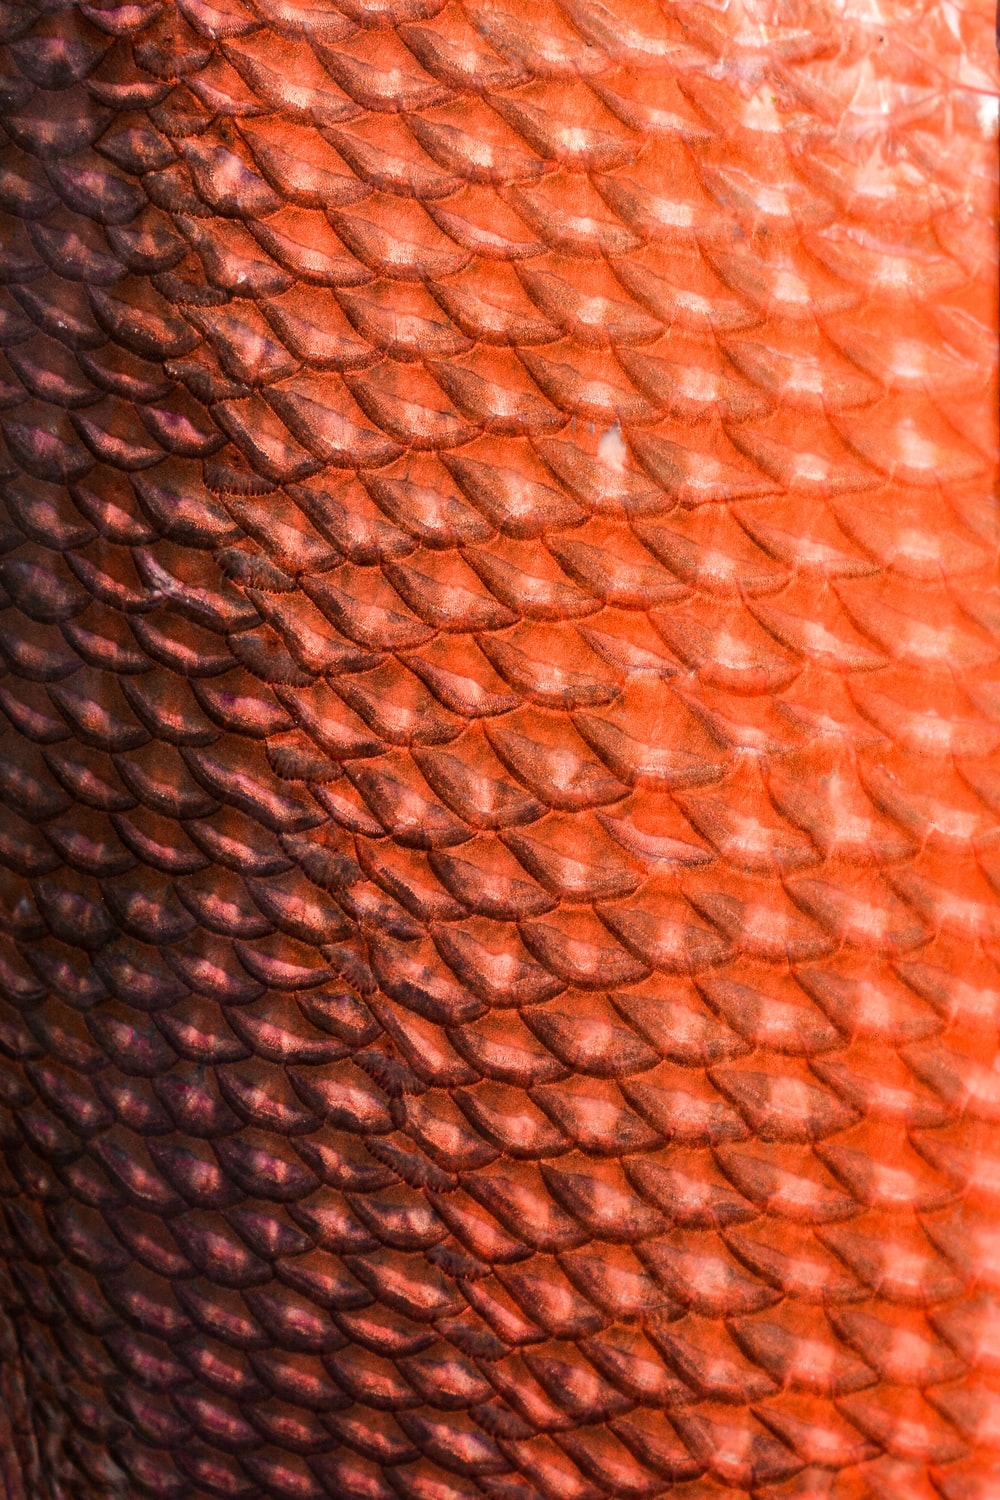 brown and white textile in close up image